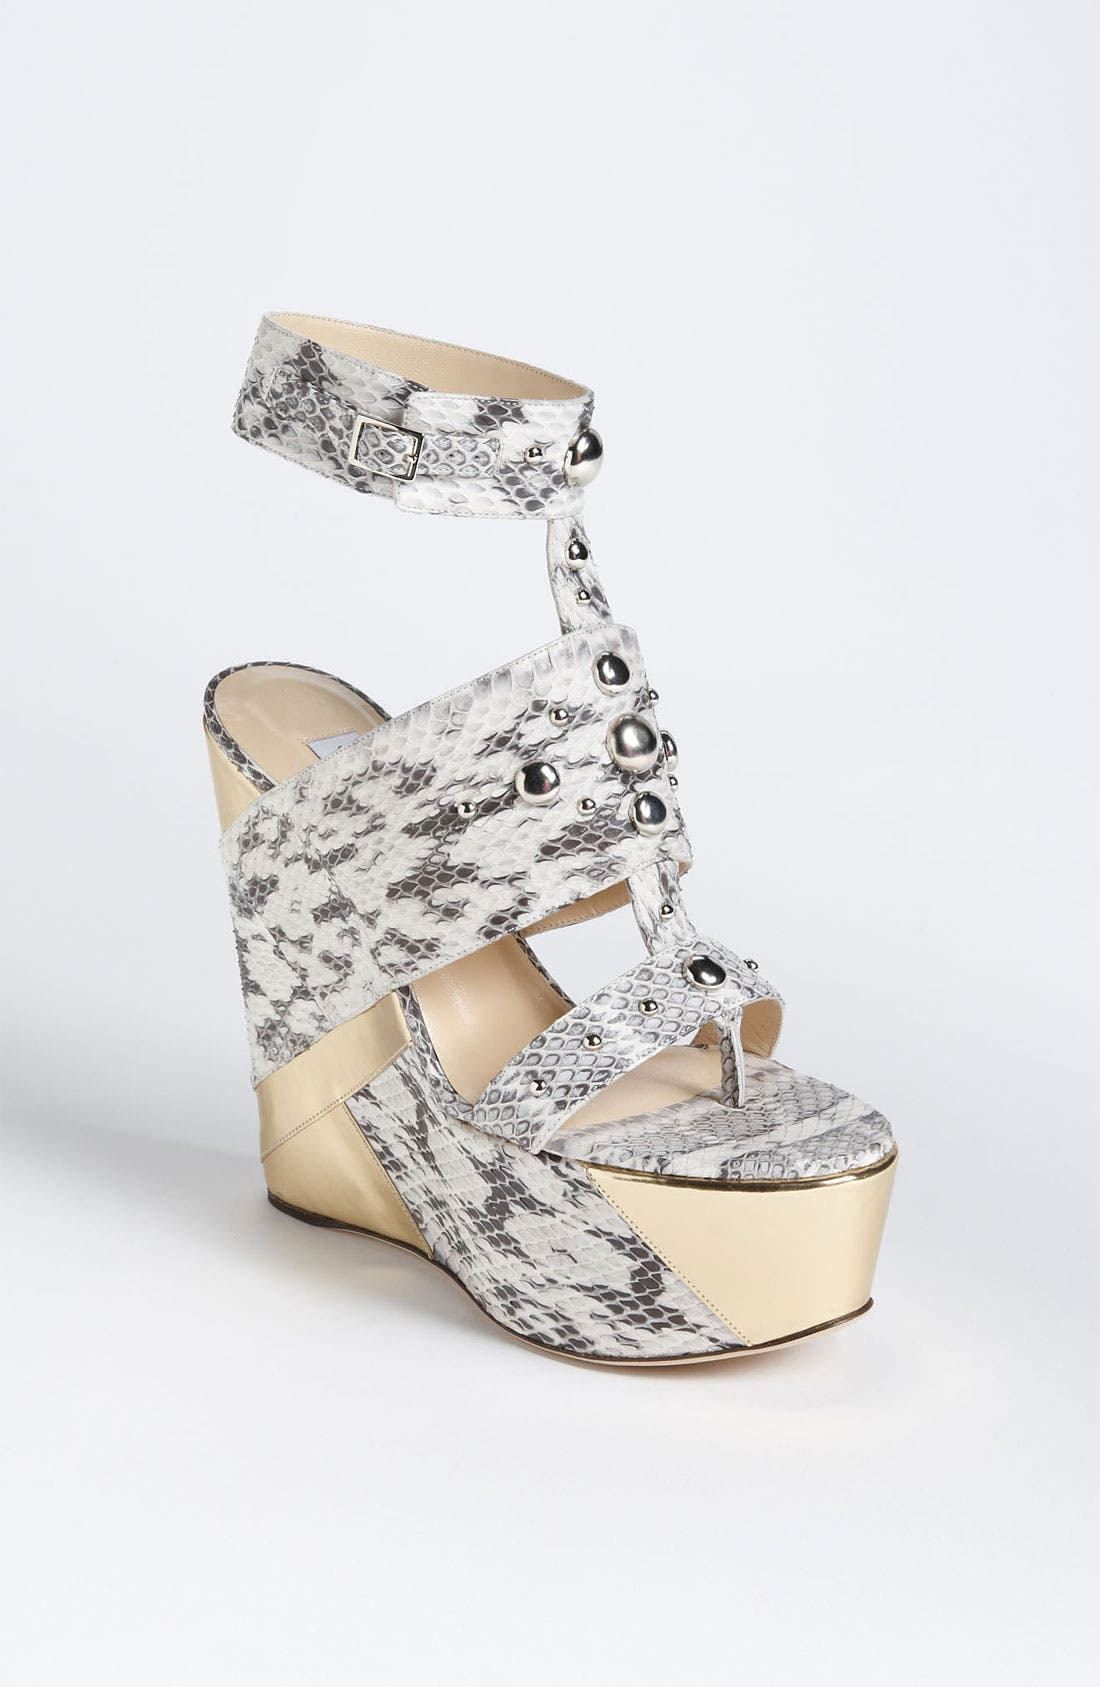 Main Image - Jimmy Choo 'Bibi' Wedge Sandal